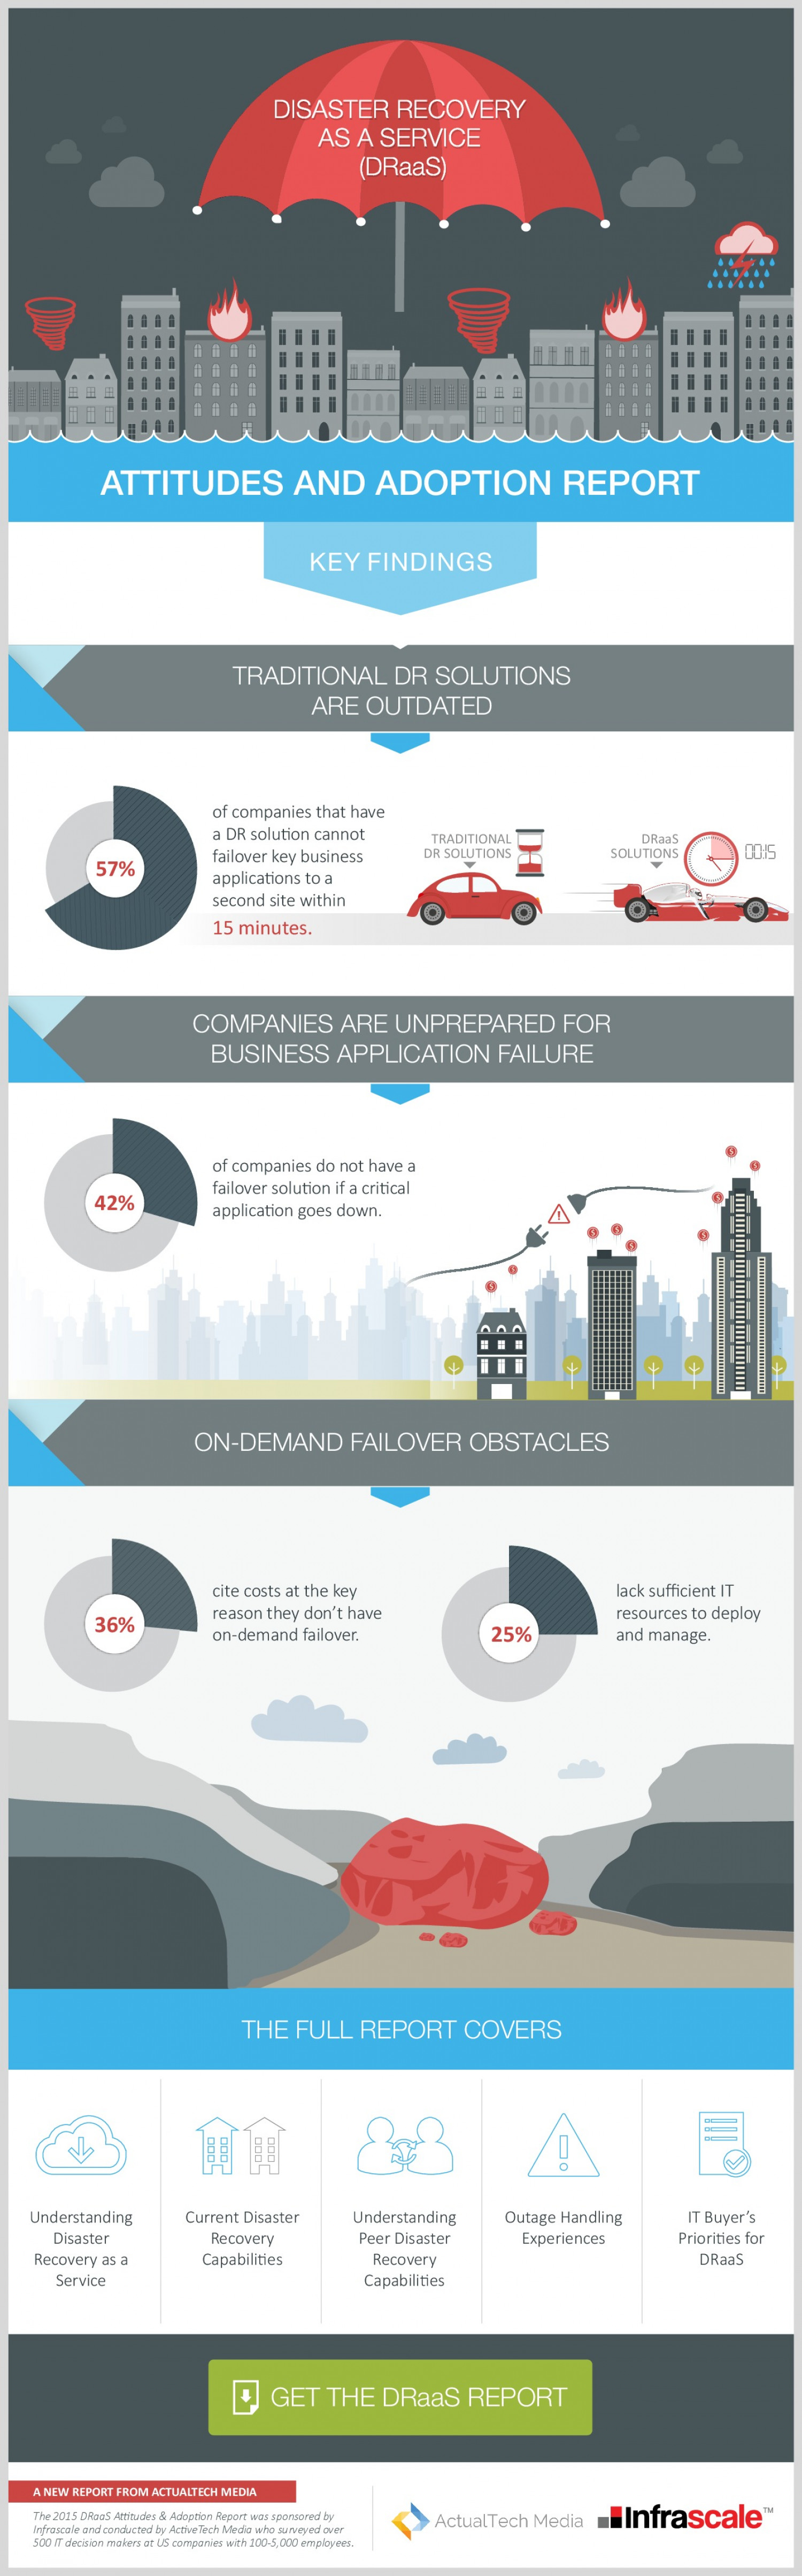 Top 4 Disaster Recovery Findings Infographic